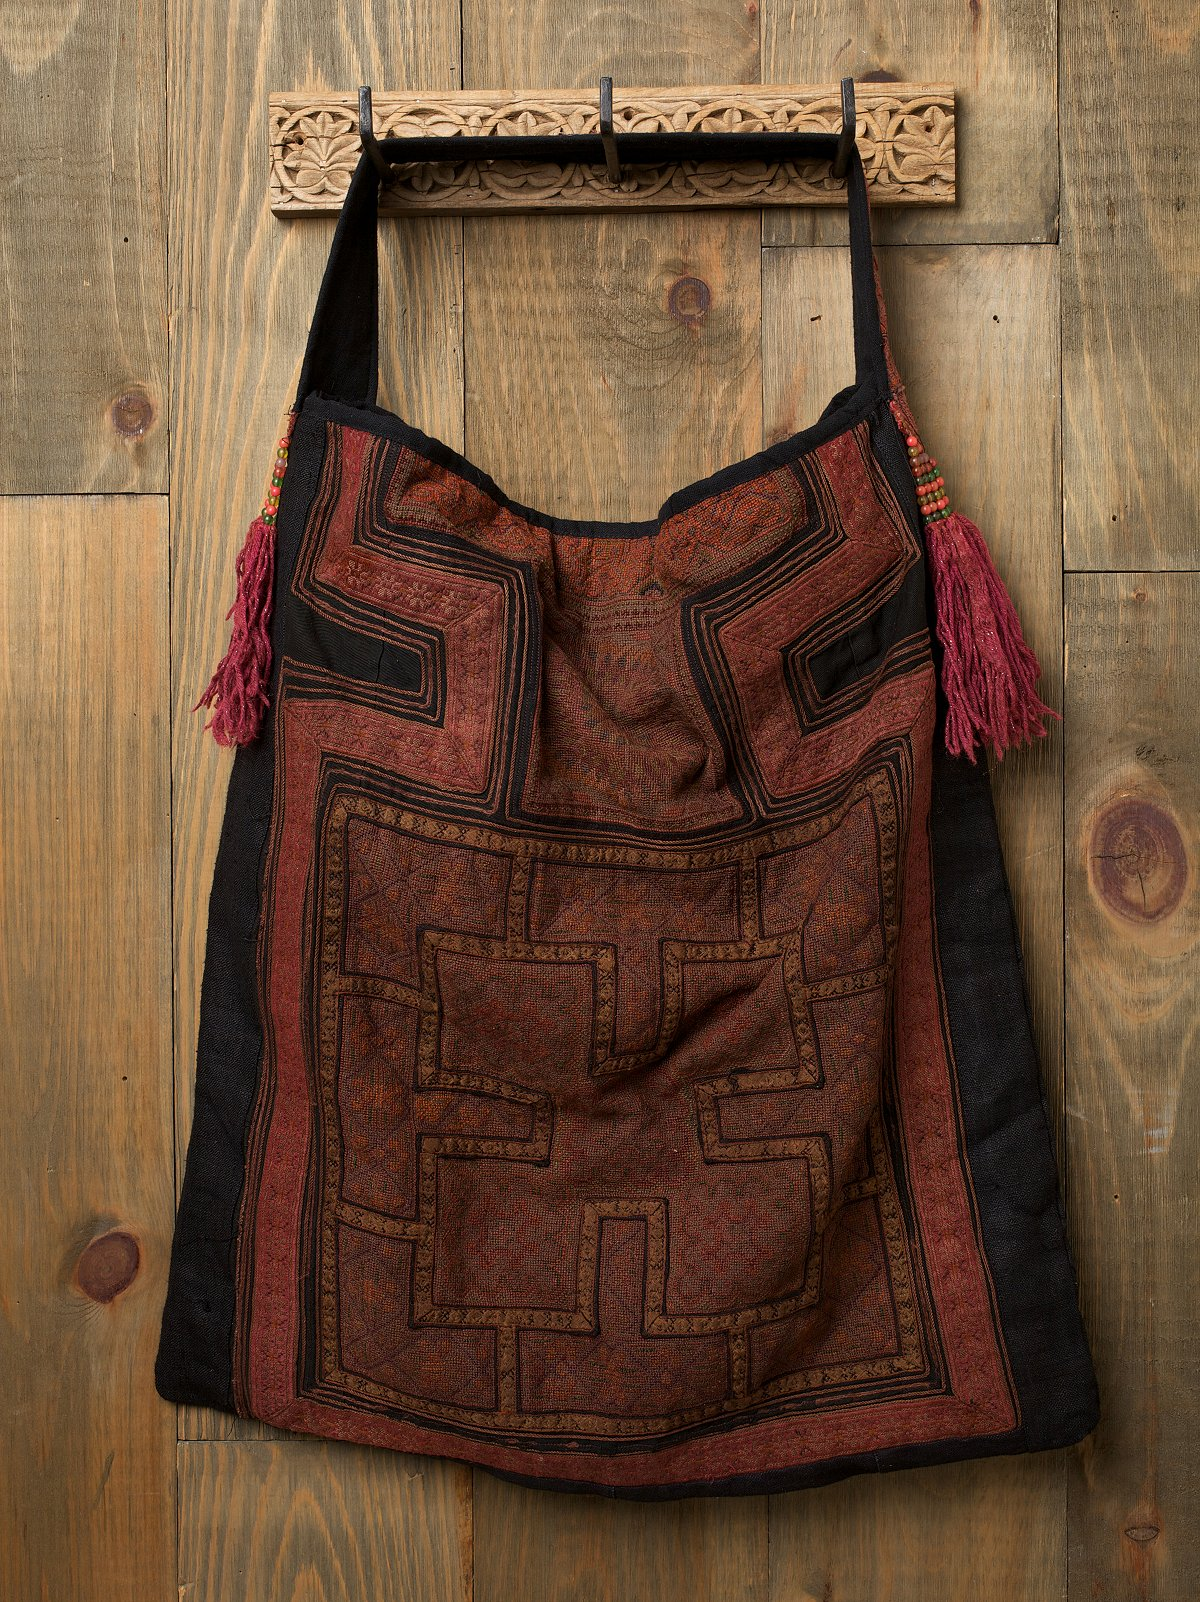 Hill Tribe Embroidered Bag